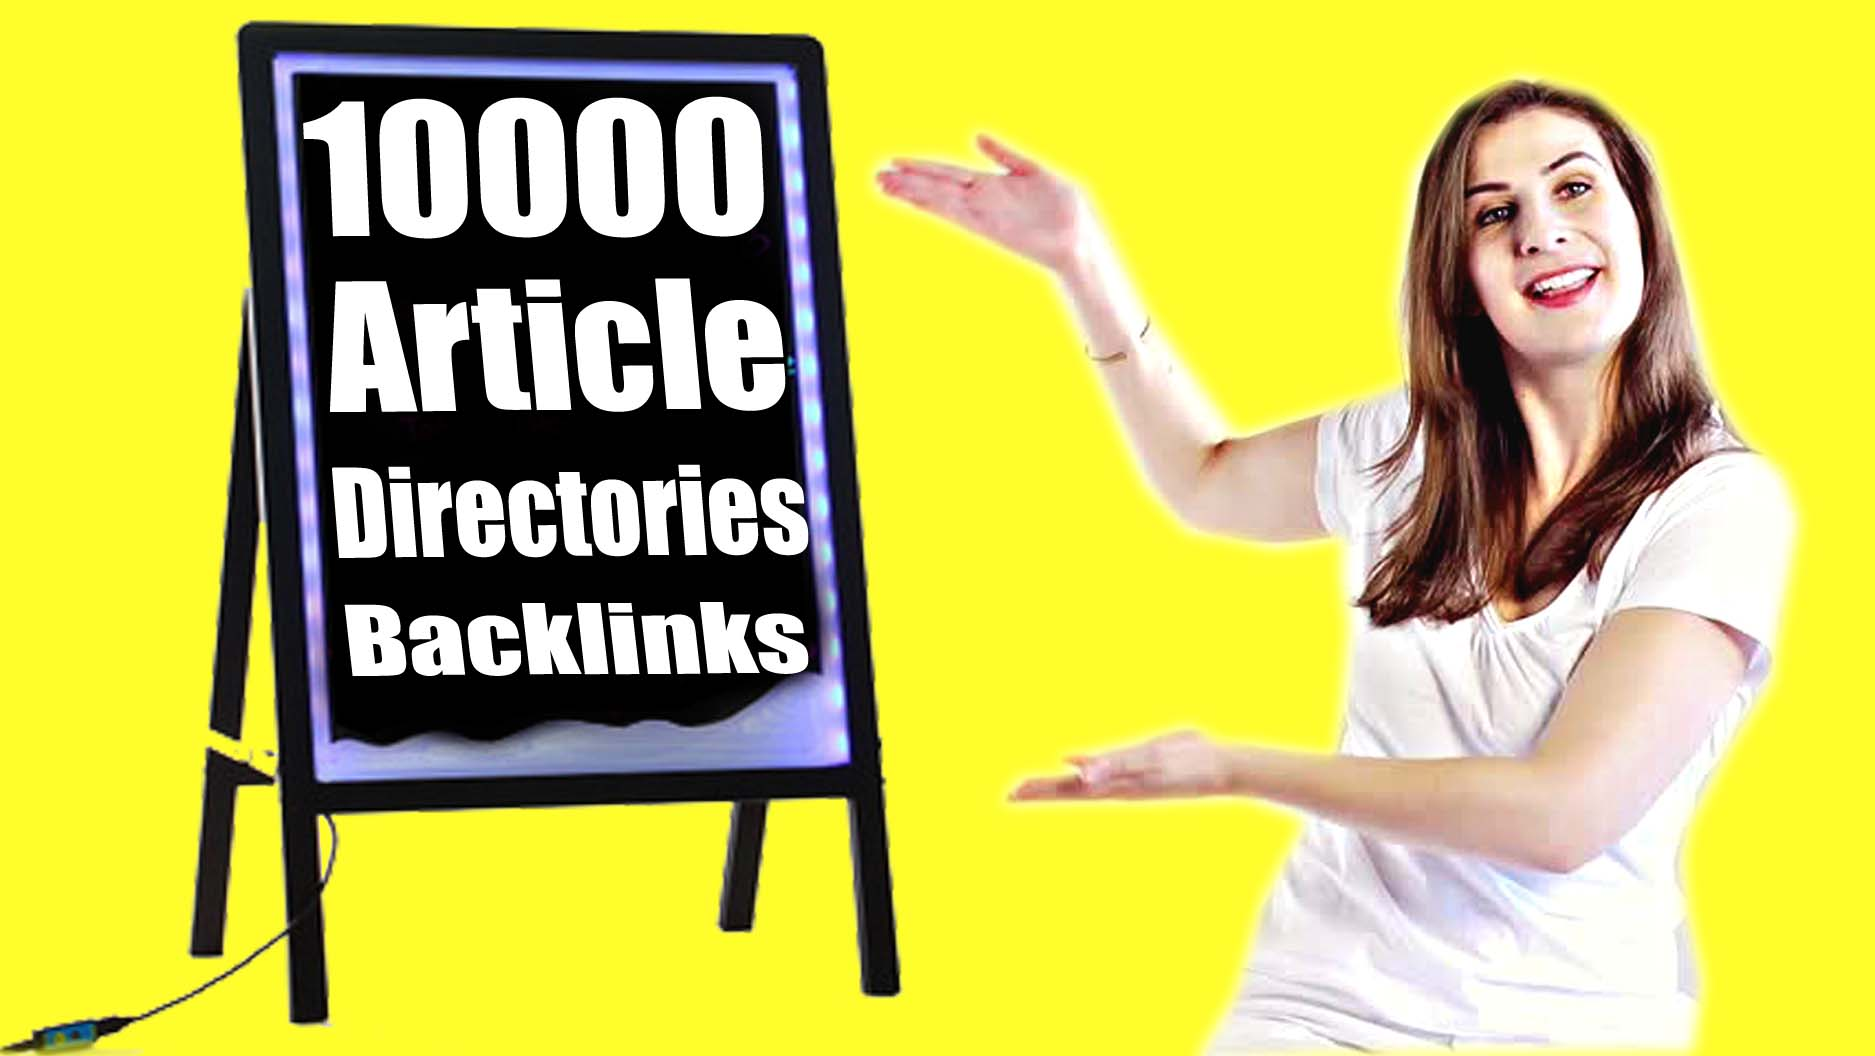 Google Ranking with 10000 Article Directories Backlinks